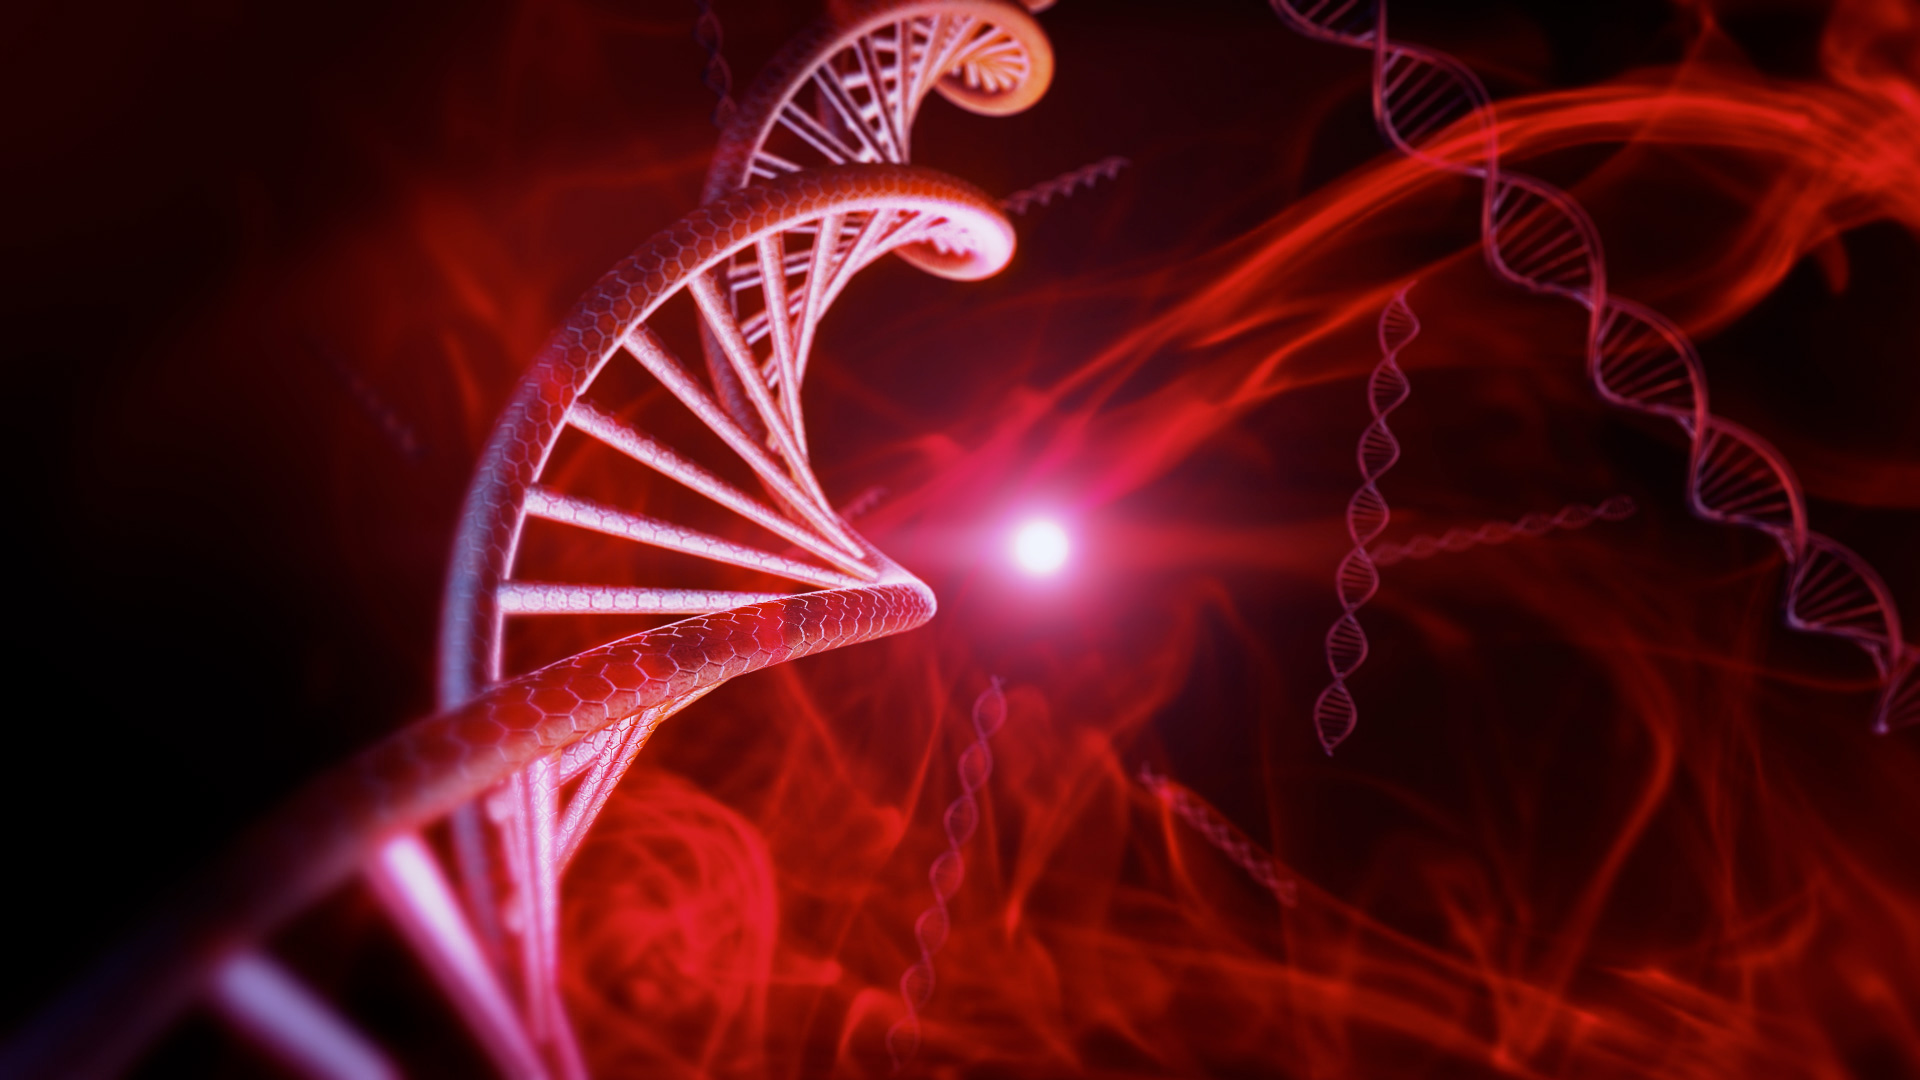 3d Effect Wallpapers Free Download Red Dna Code With Genetic Background In Slow Motion 3d